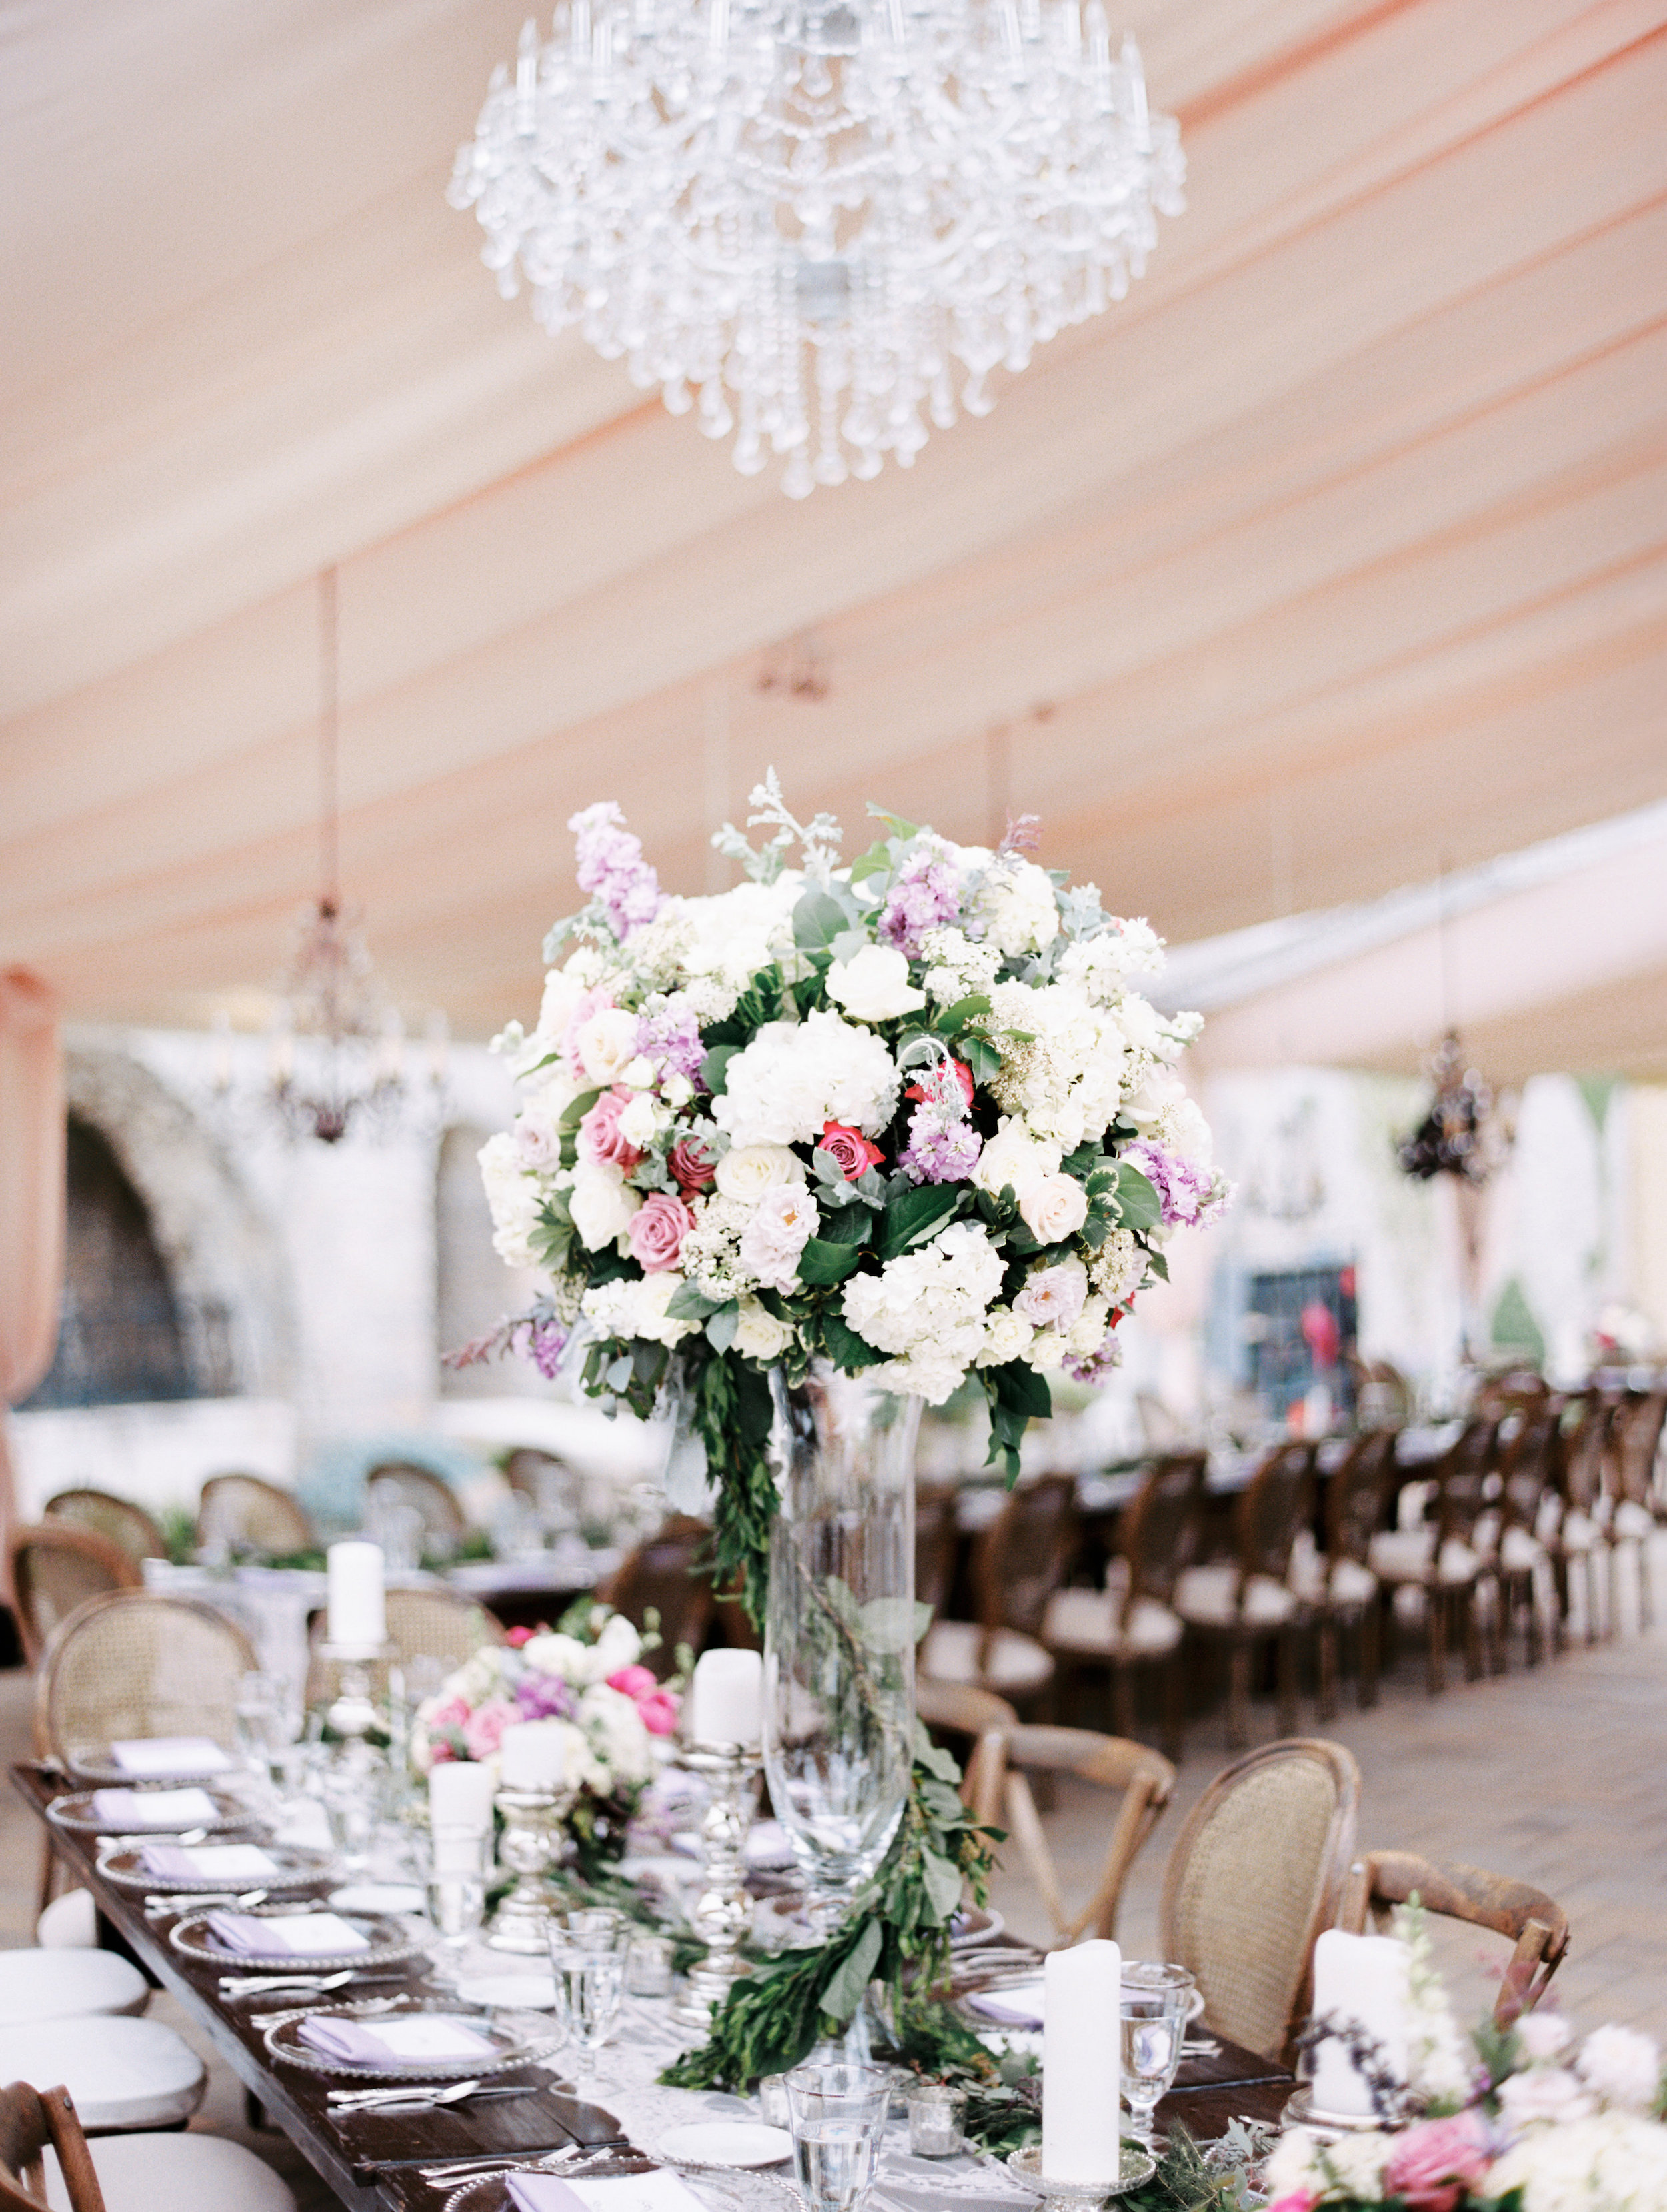 Wedding at Greenacres Art Center with Florals by Yellow Canary Event Design